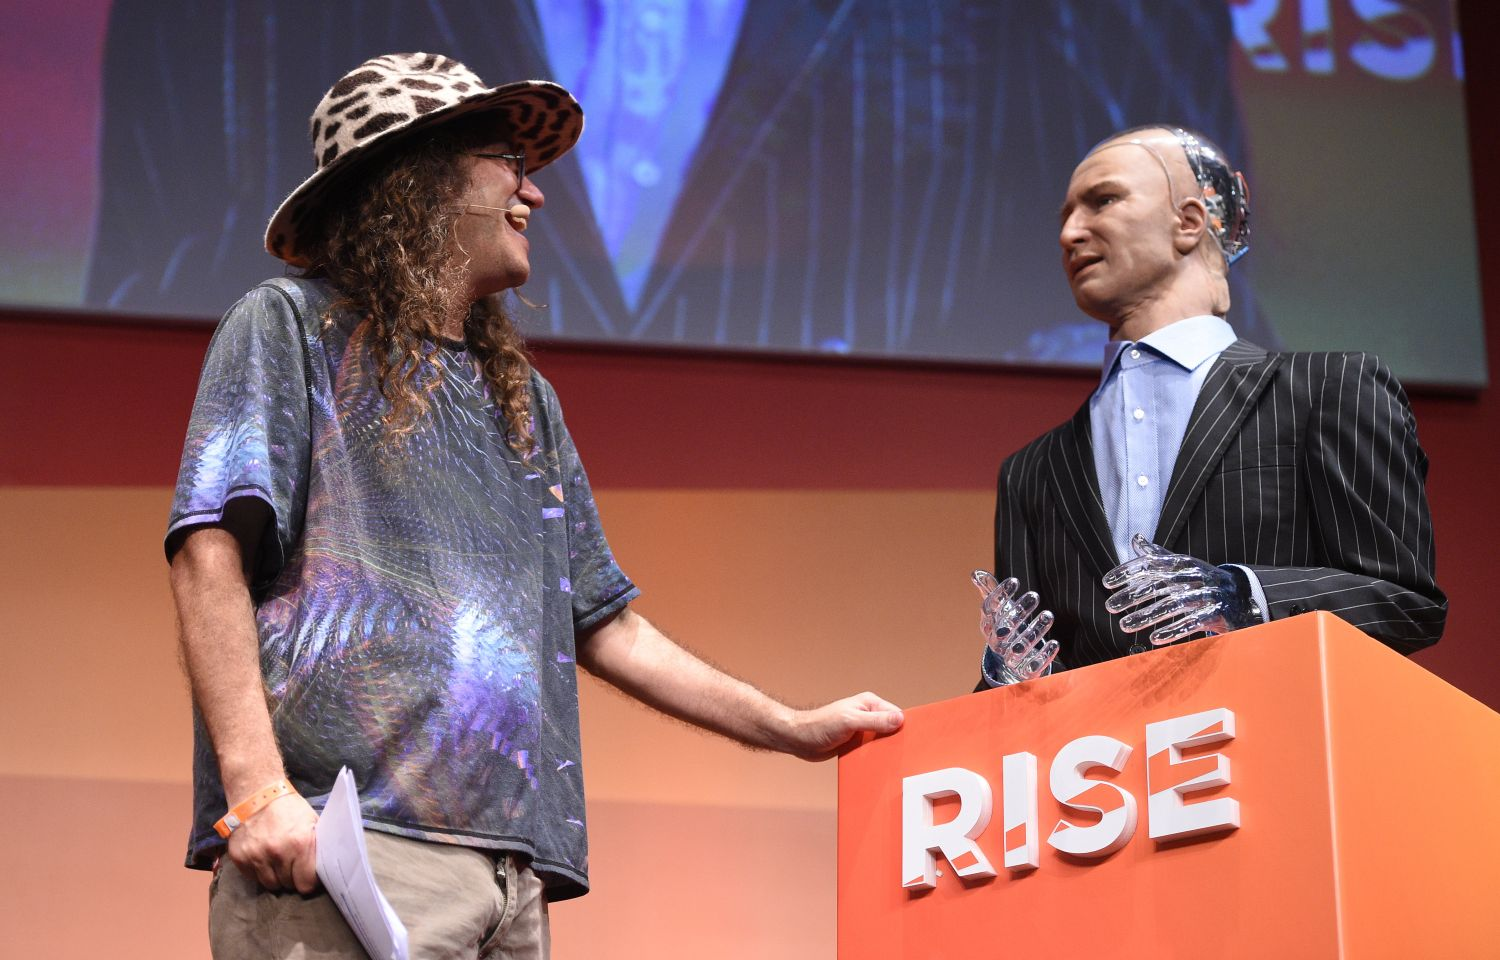 12 July 2017; Ben Goertzel, Chief Scientist, Hanson Robotics, with Han the Robot on Centre stage during day two of RISE 2017 in Hong Kong. Photo by Cody Glenn / RISE / Sportsfile